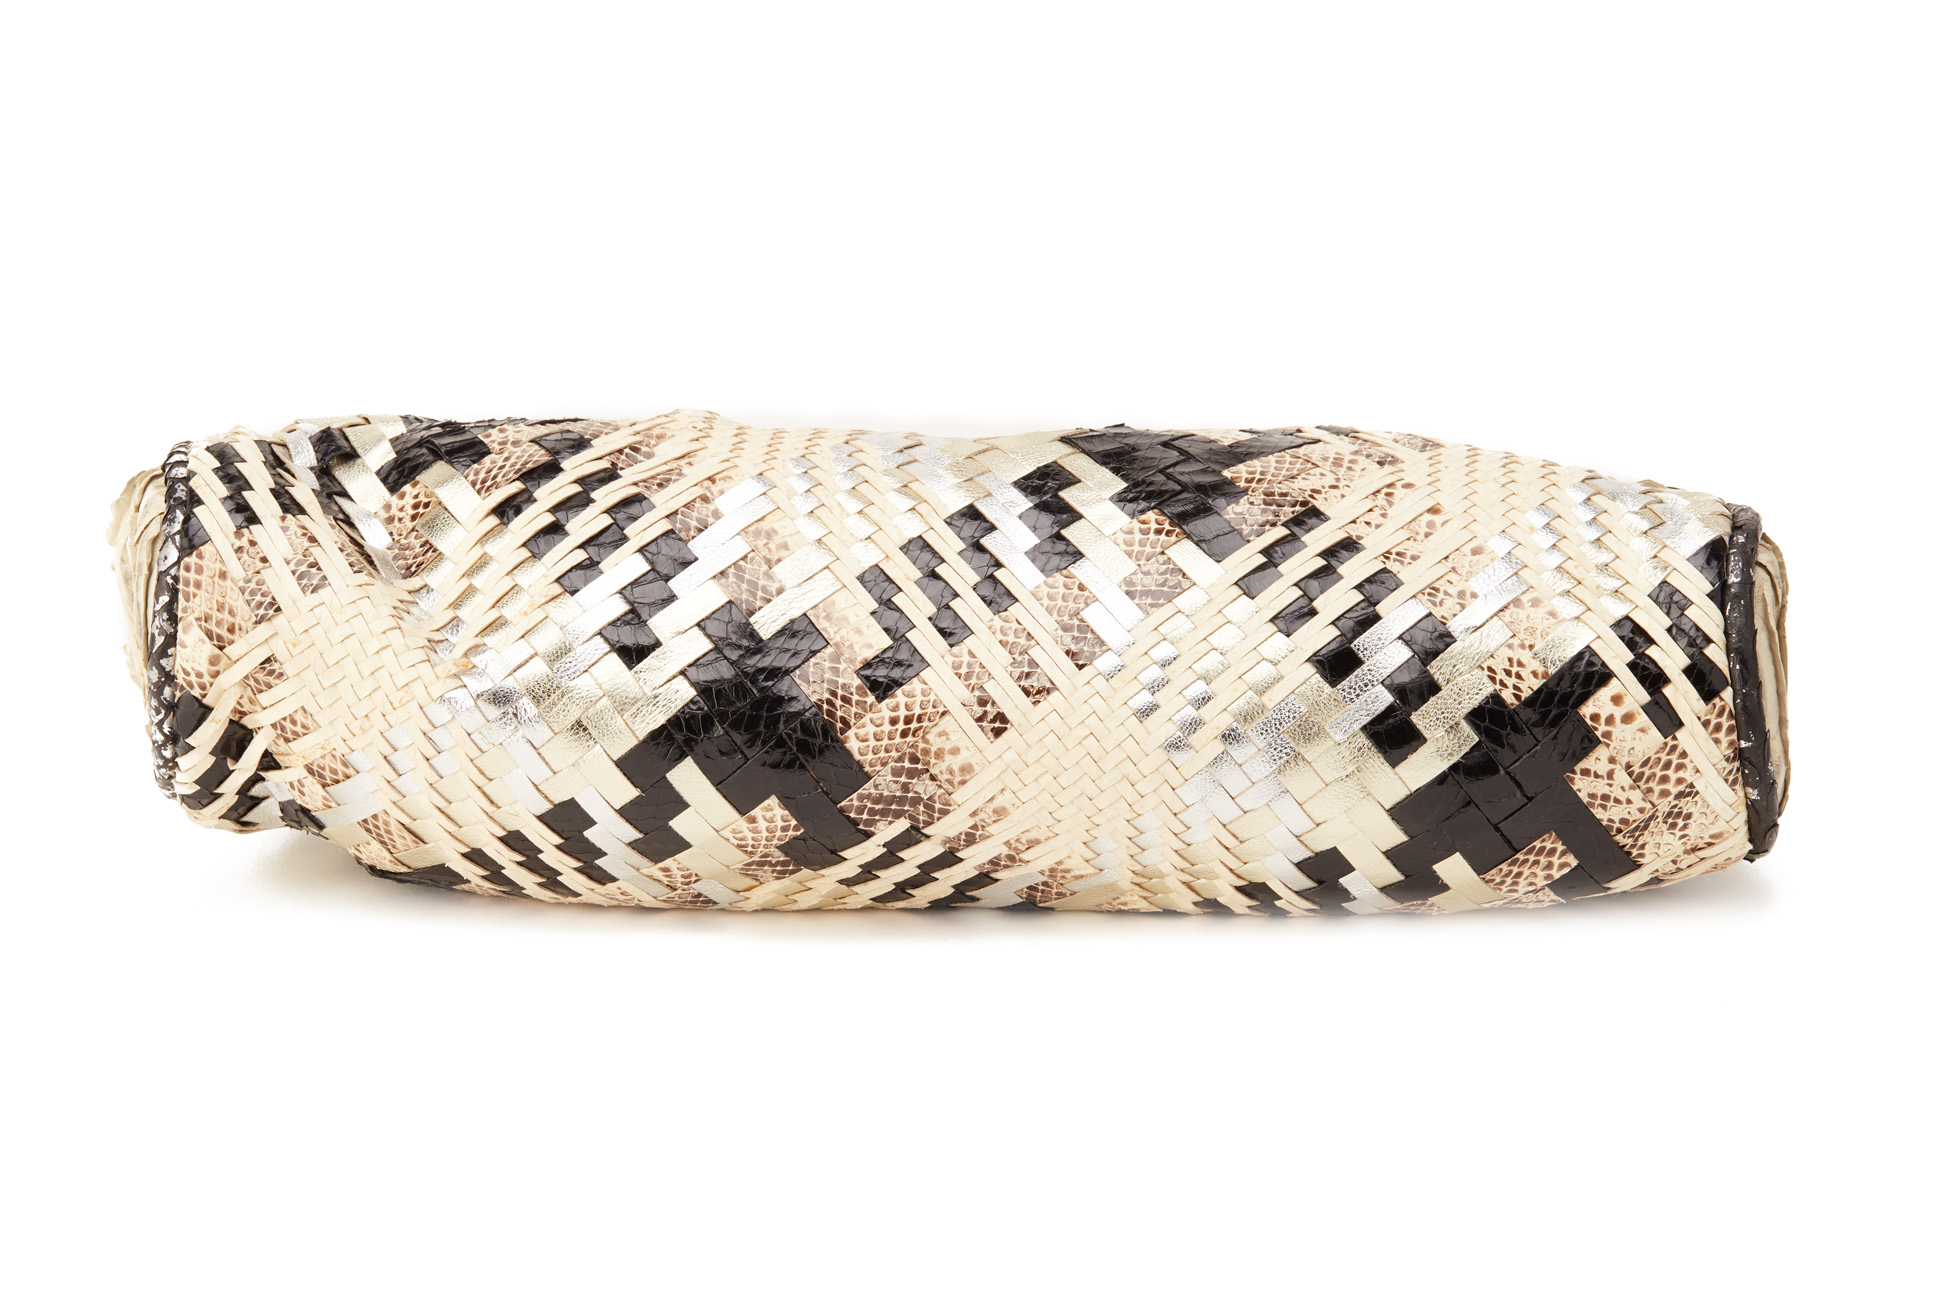 AN ANA MULTICOLOURED SNAKESKIN WEAVED CLUTCH - Image 3 of 5